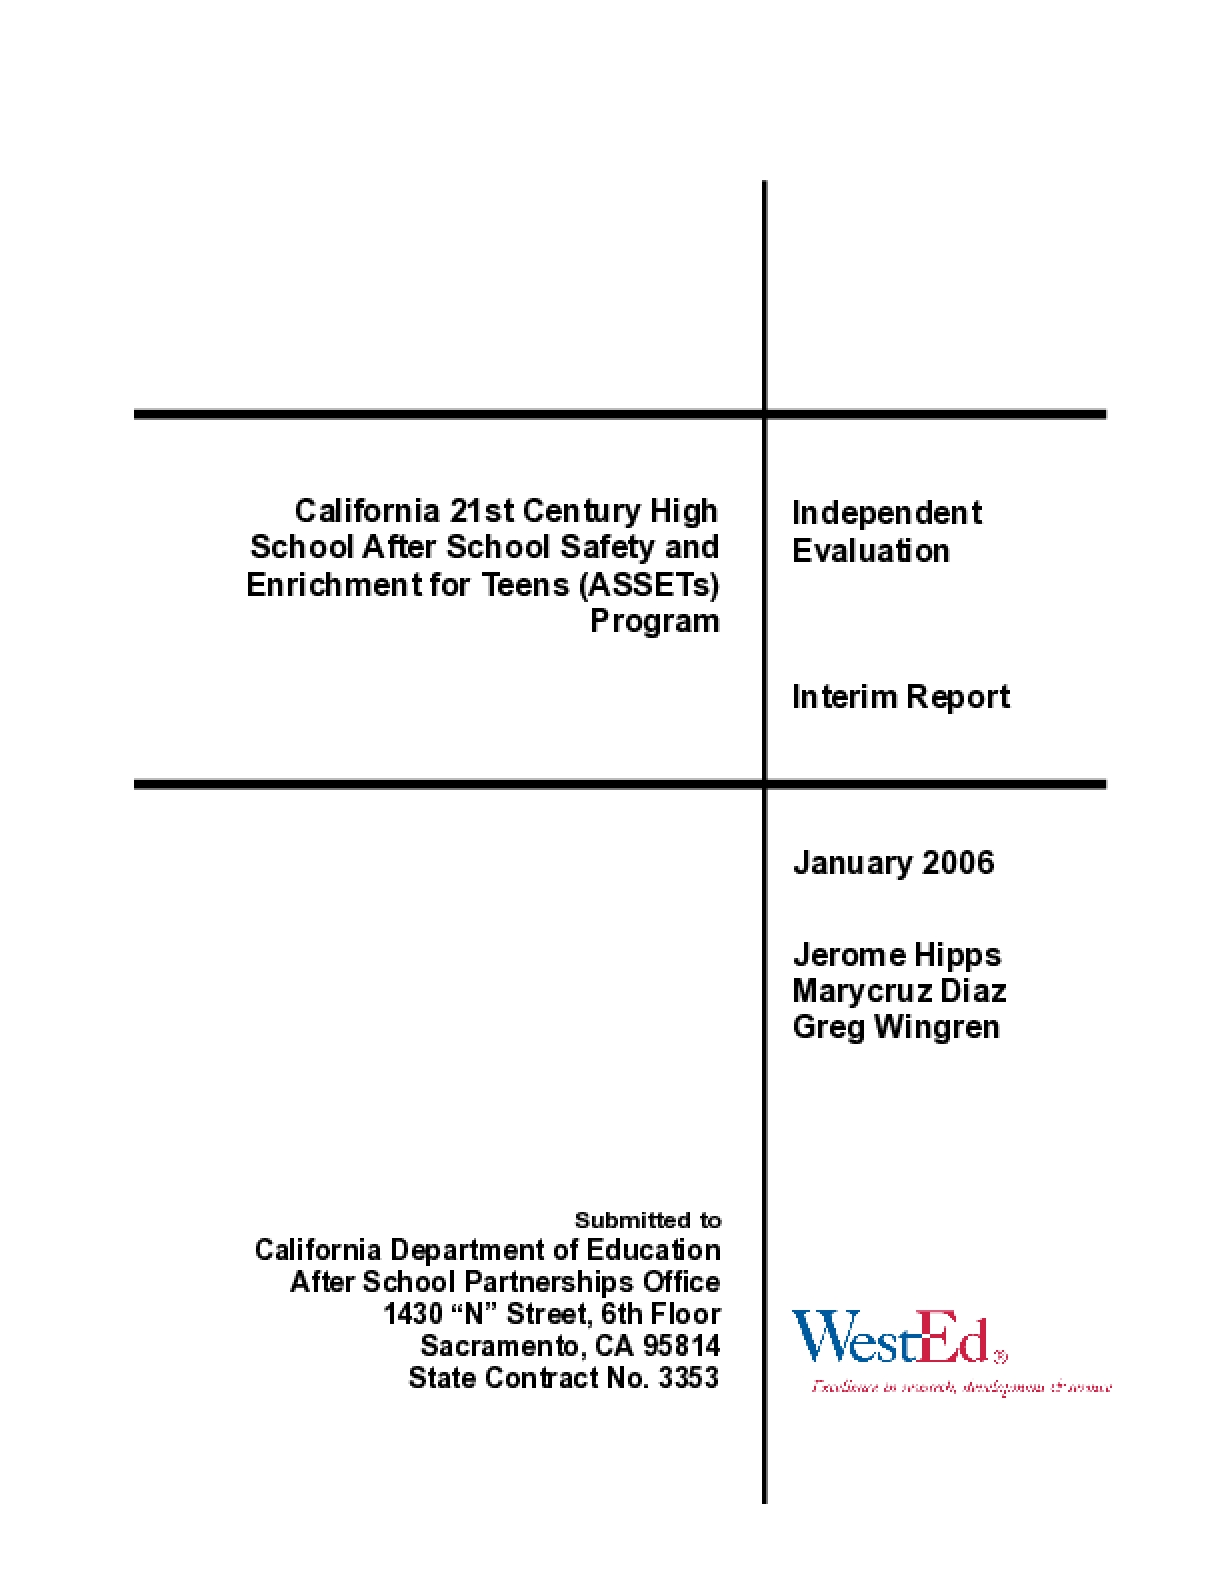 ASSETs Interim Evaluation  Report: California 21st Century High School After School Safety and Enrichment for Teens (ASSETs) Program  --  Interim Evaluation